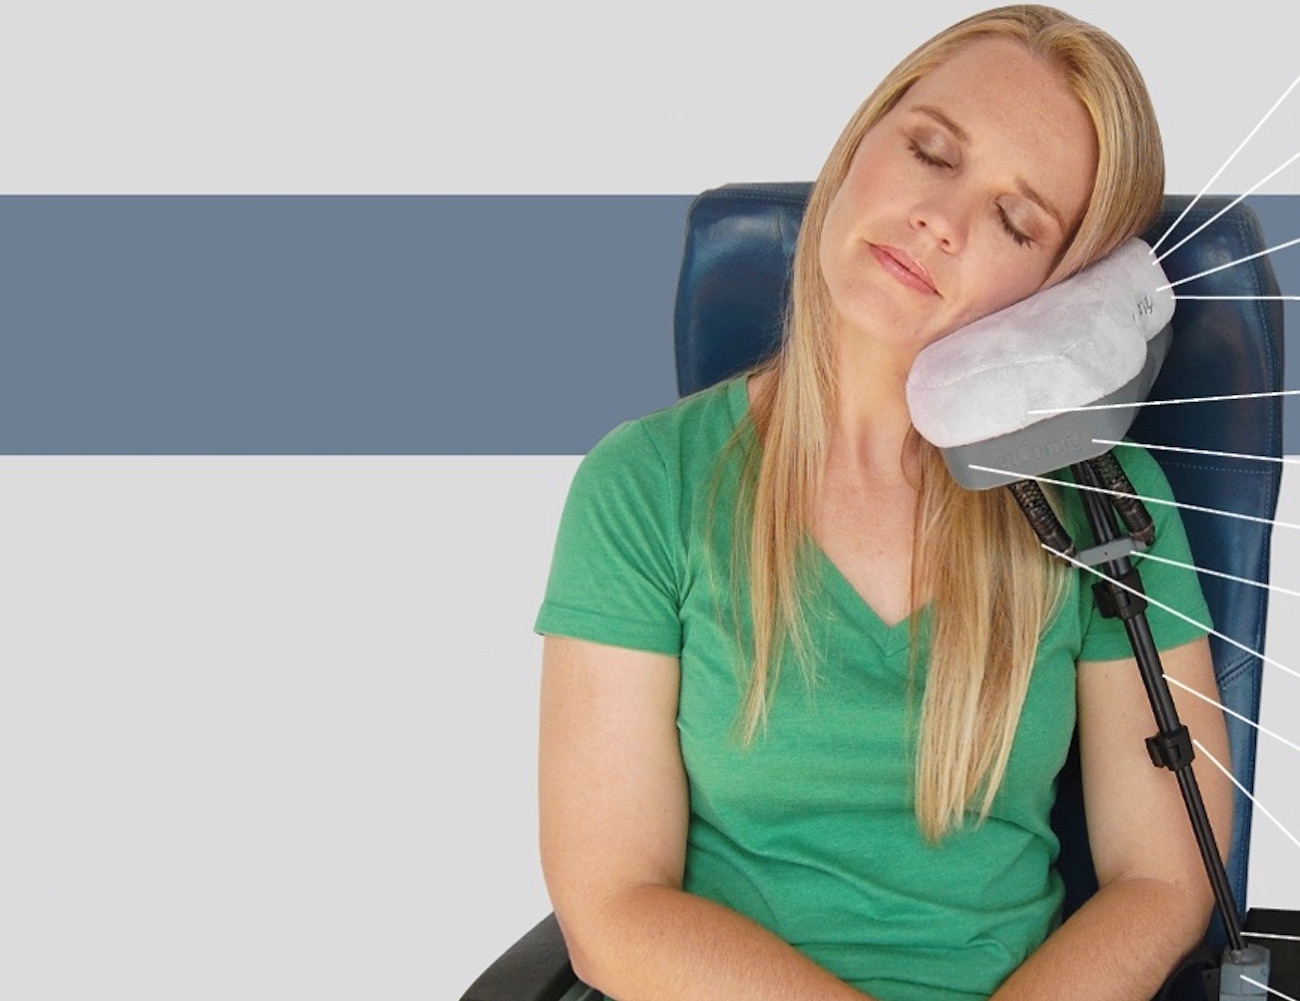 JetComfy+%26%238211%3B+Best+Travel+Pillow+Ever%2C+With+16+Features